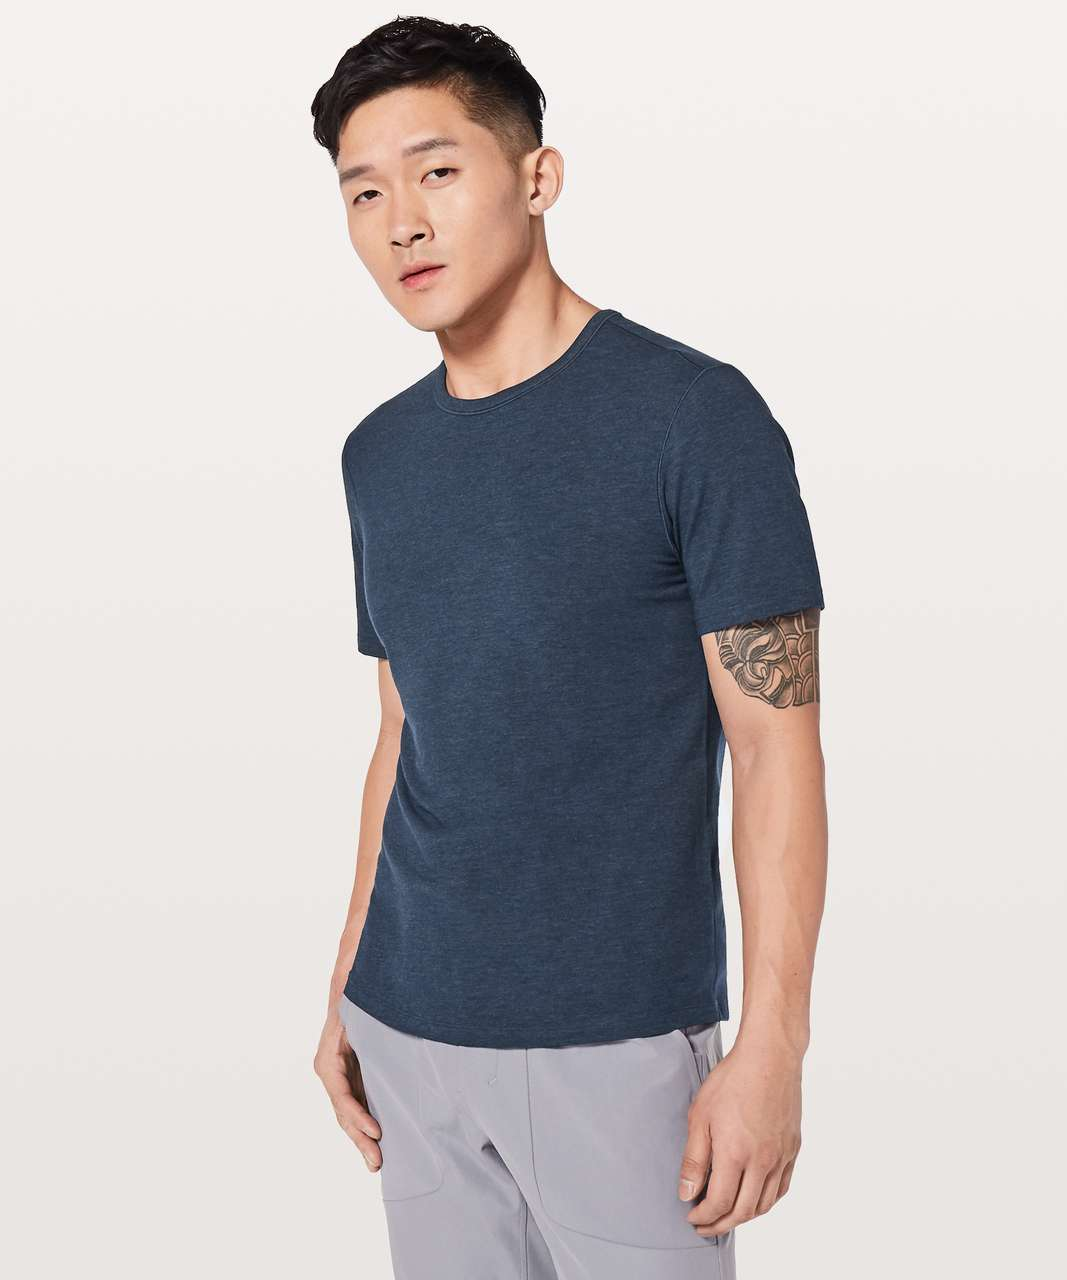 Lululemon 5 Year Basic Tee *Updated Fit - Heathered Nautical Navy